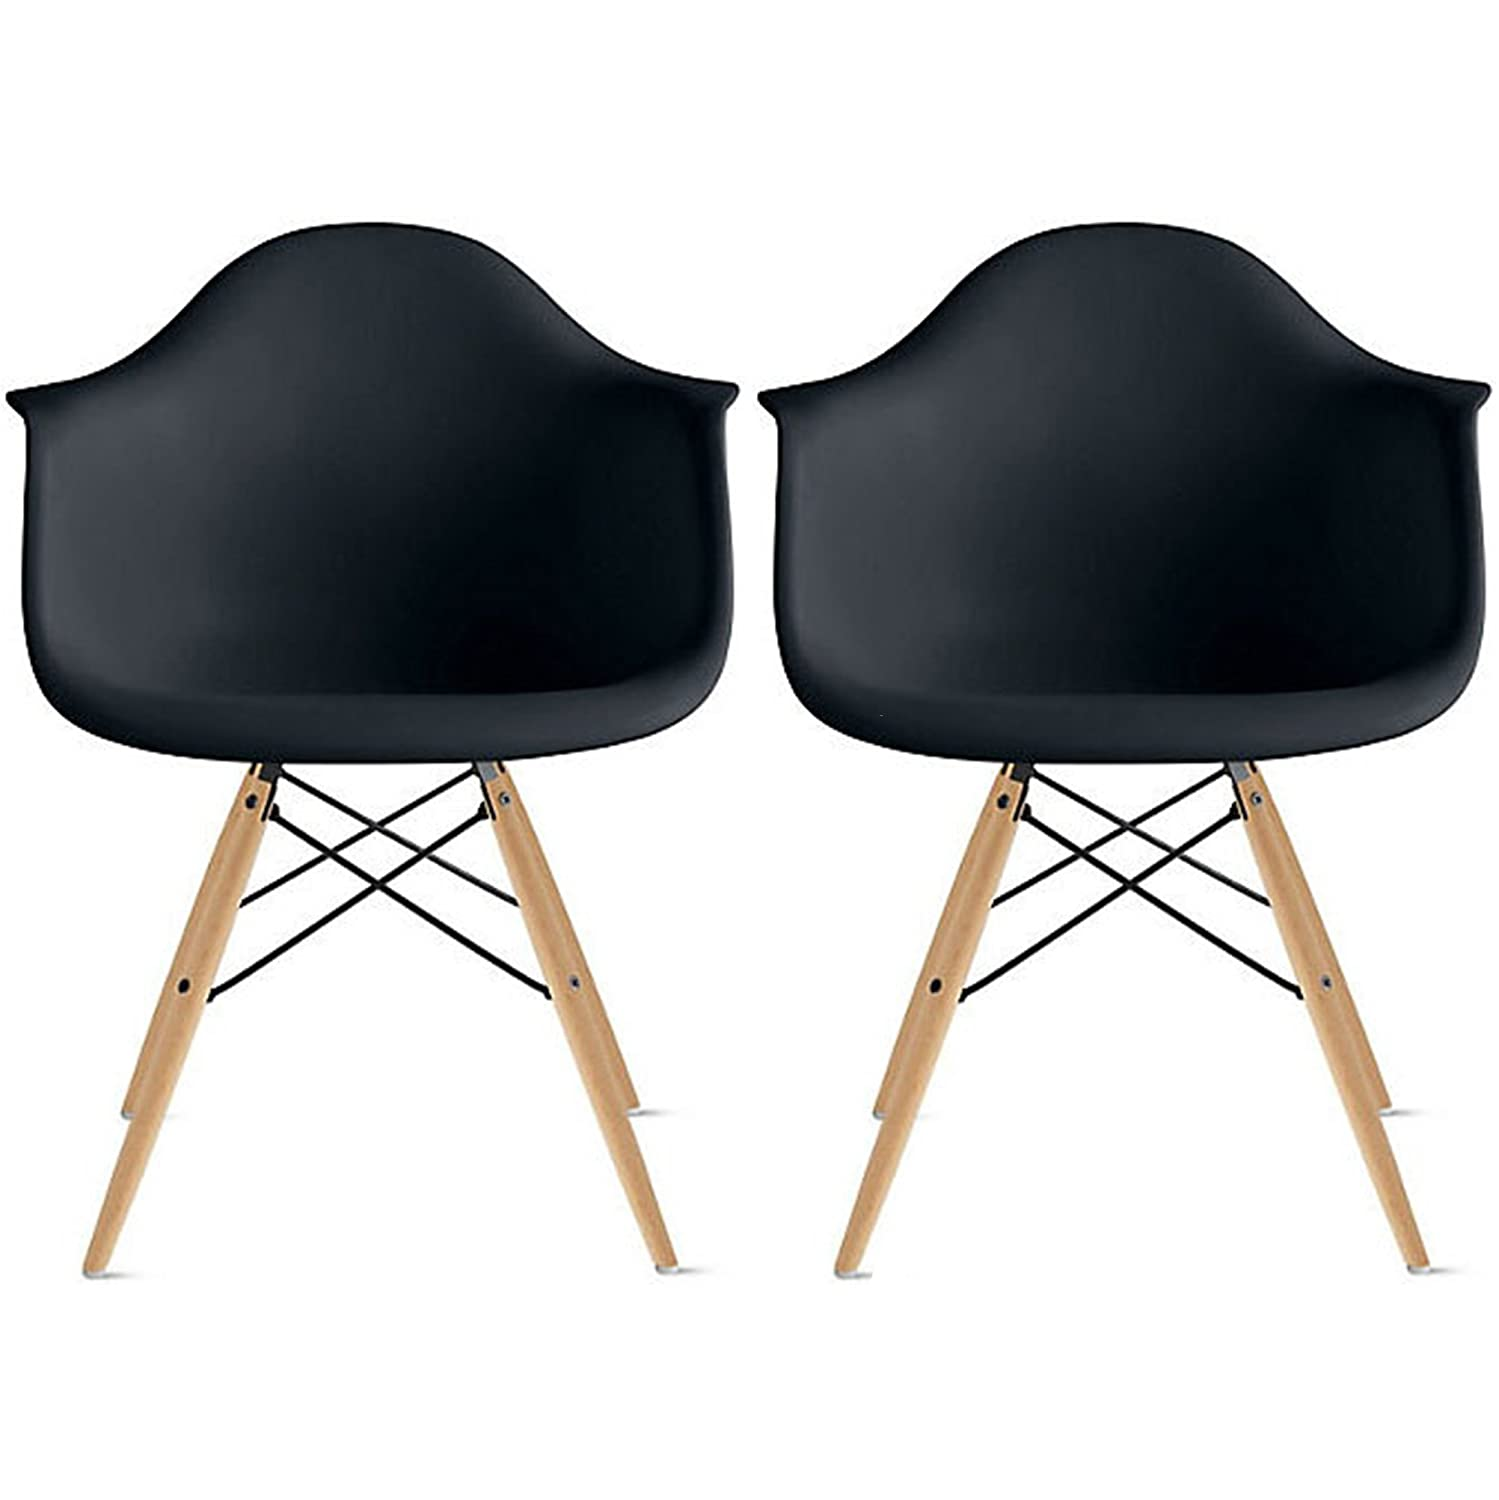 Amazon com   2xhome   Set of Six  6  Black   Eames Style Eames Arm Chair  Side Ray Chair Molded Plastic Shell Bedroom Dining Side Ray Chair with  Brown Wood. Amazon com   2xhome   Set of Six  6  Black   Eames Style Eames Arm